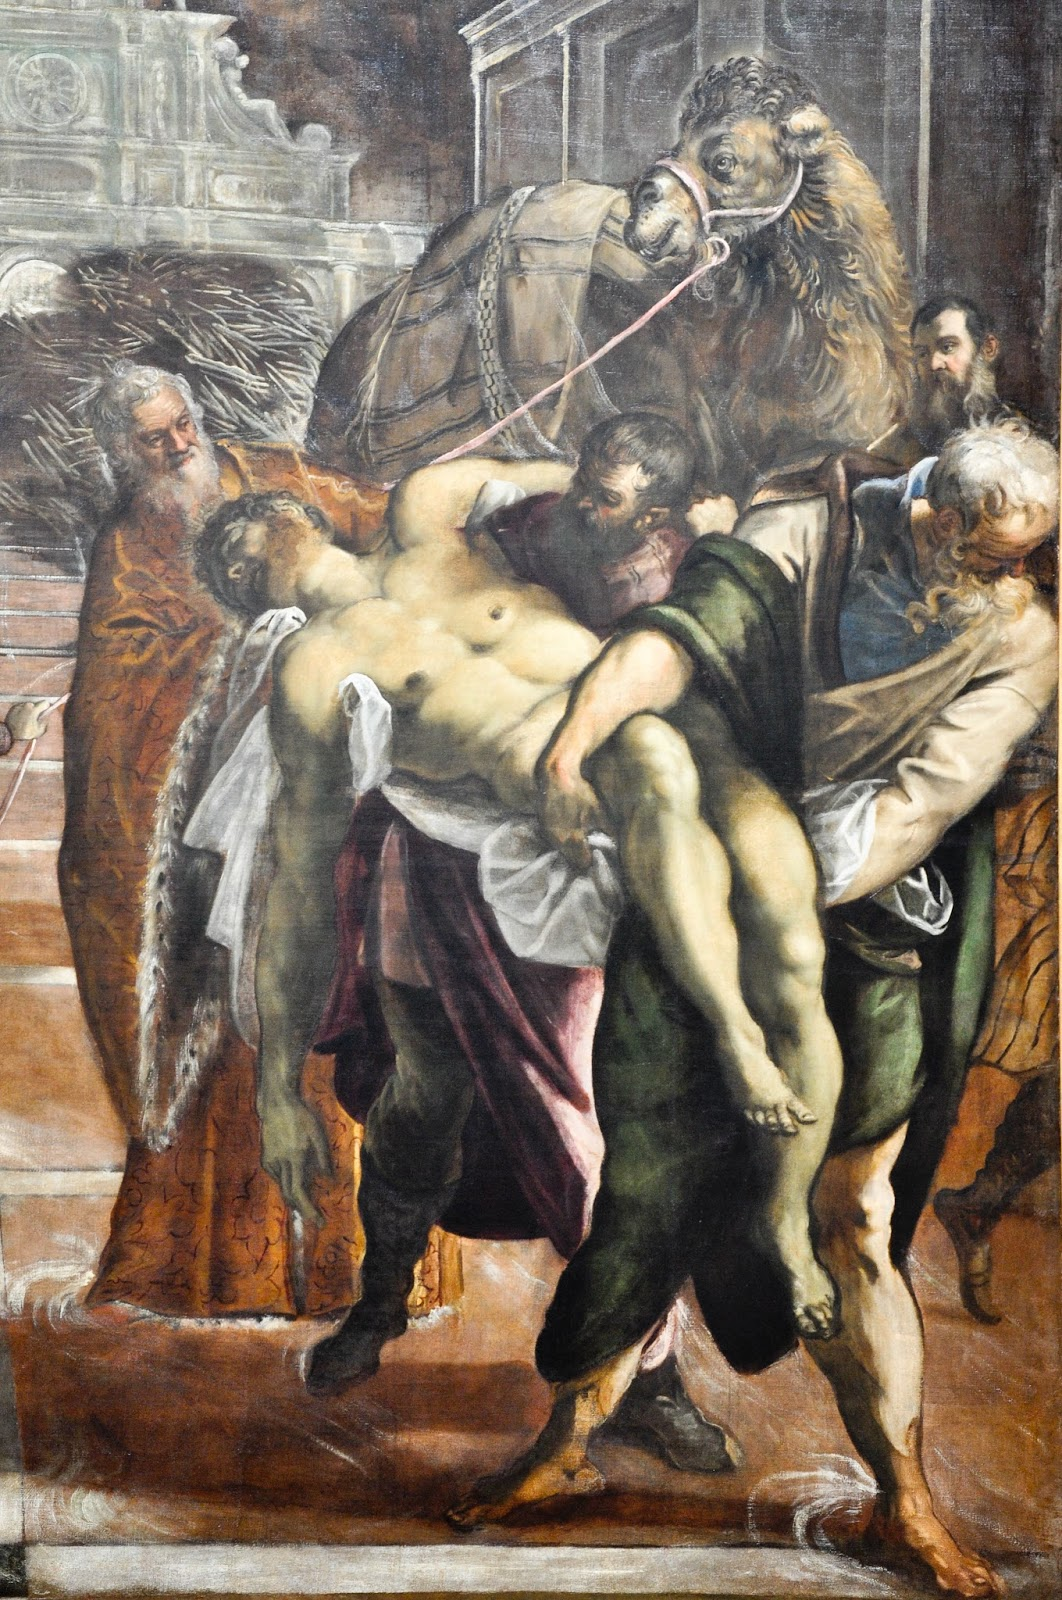 A close-up of Tintoretto's painting 'Theft of St. Mark's Body from Alexandria, Gallerie dell'Accademia in Venice